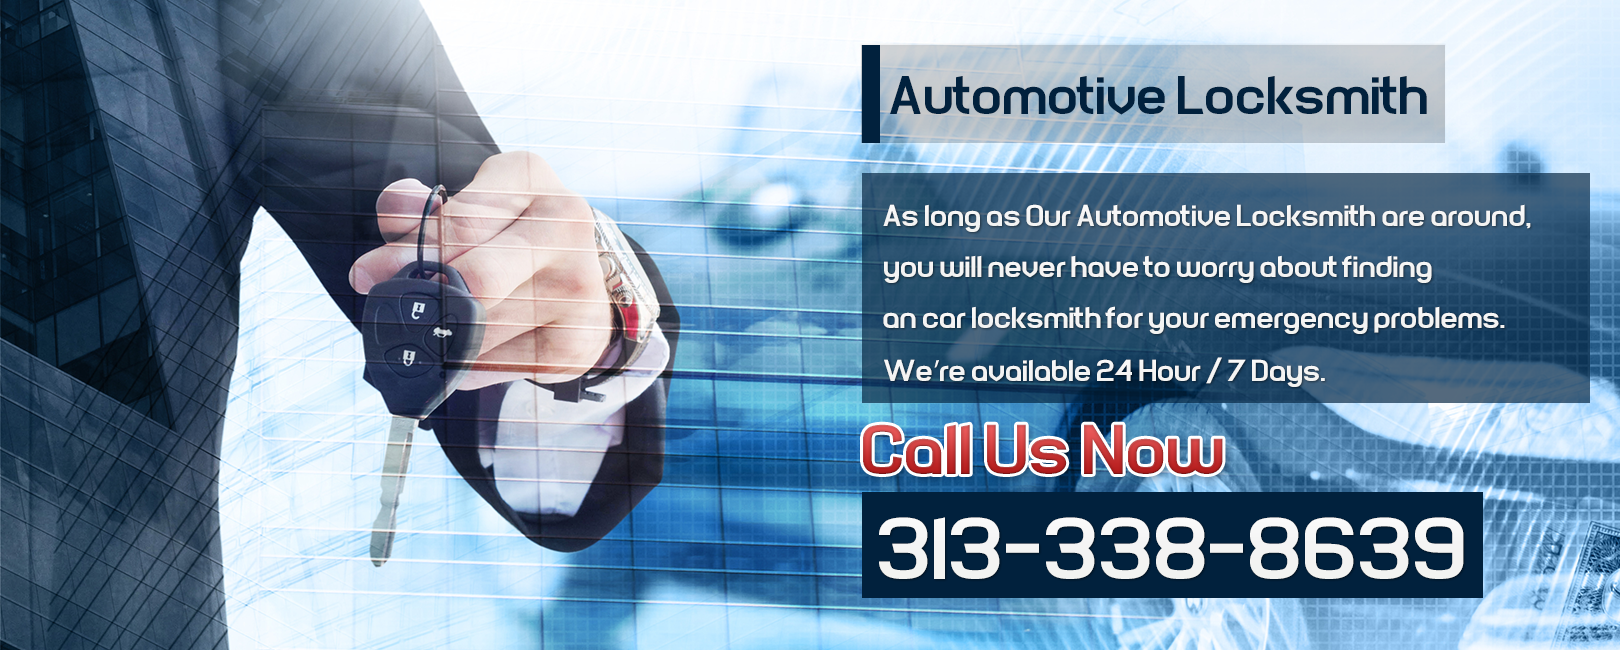 Automotive Locksmith Detroit MI